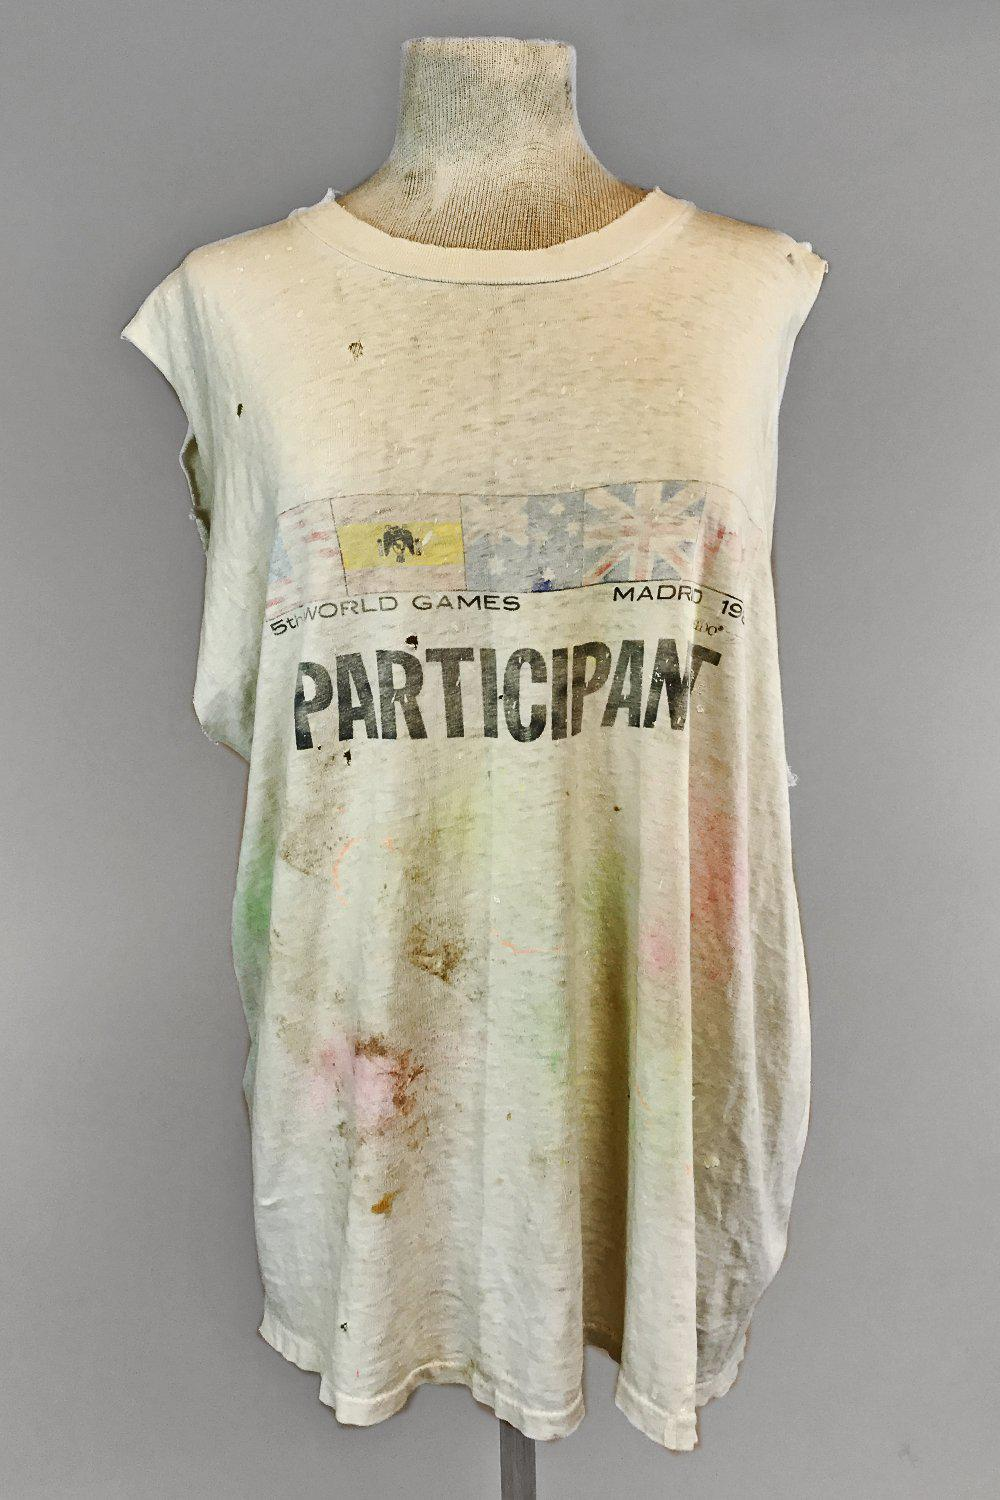 1986 Tissue Thin World Games Participant Destroyed White Tee, Tops, BACKBITE, BACKBITE